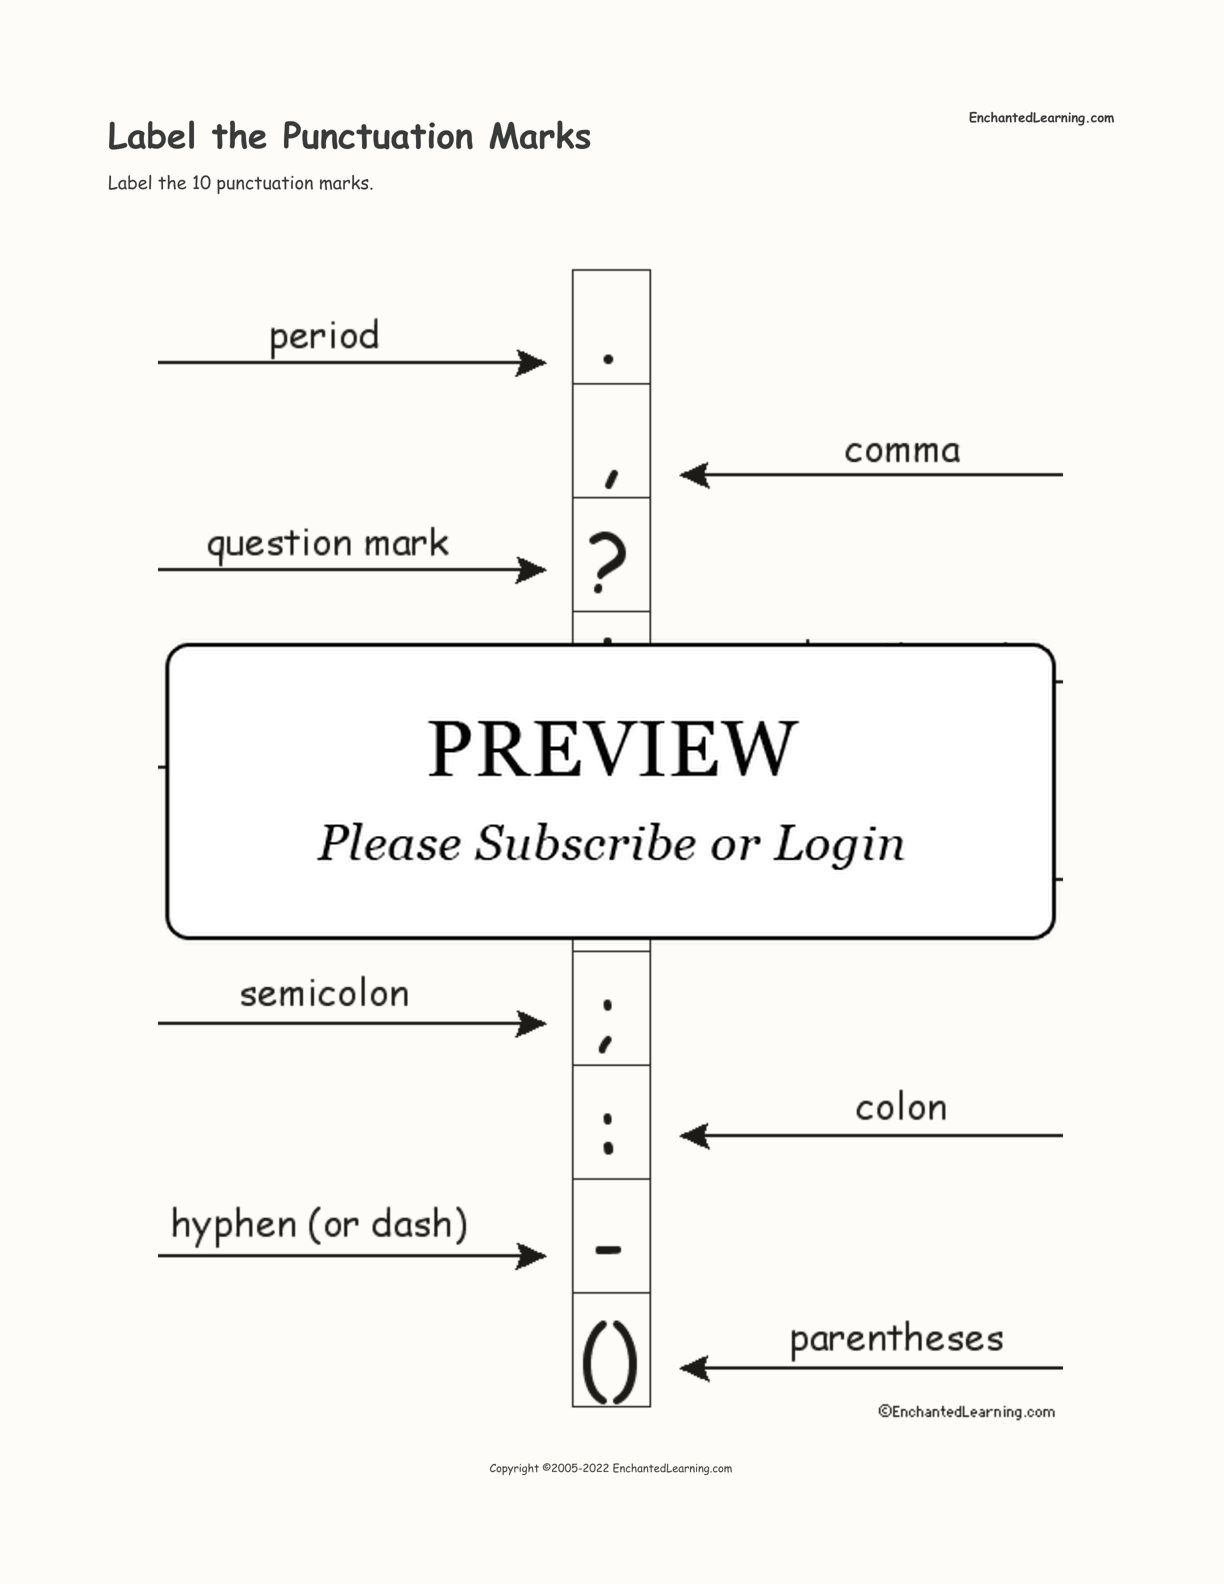 Label The Punctuation Marks